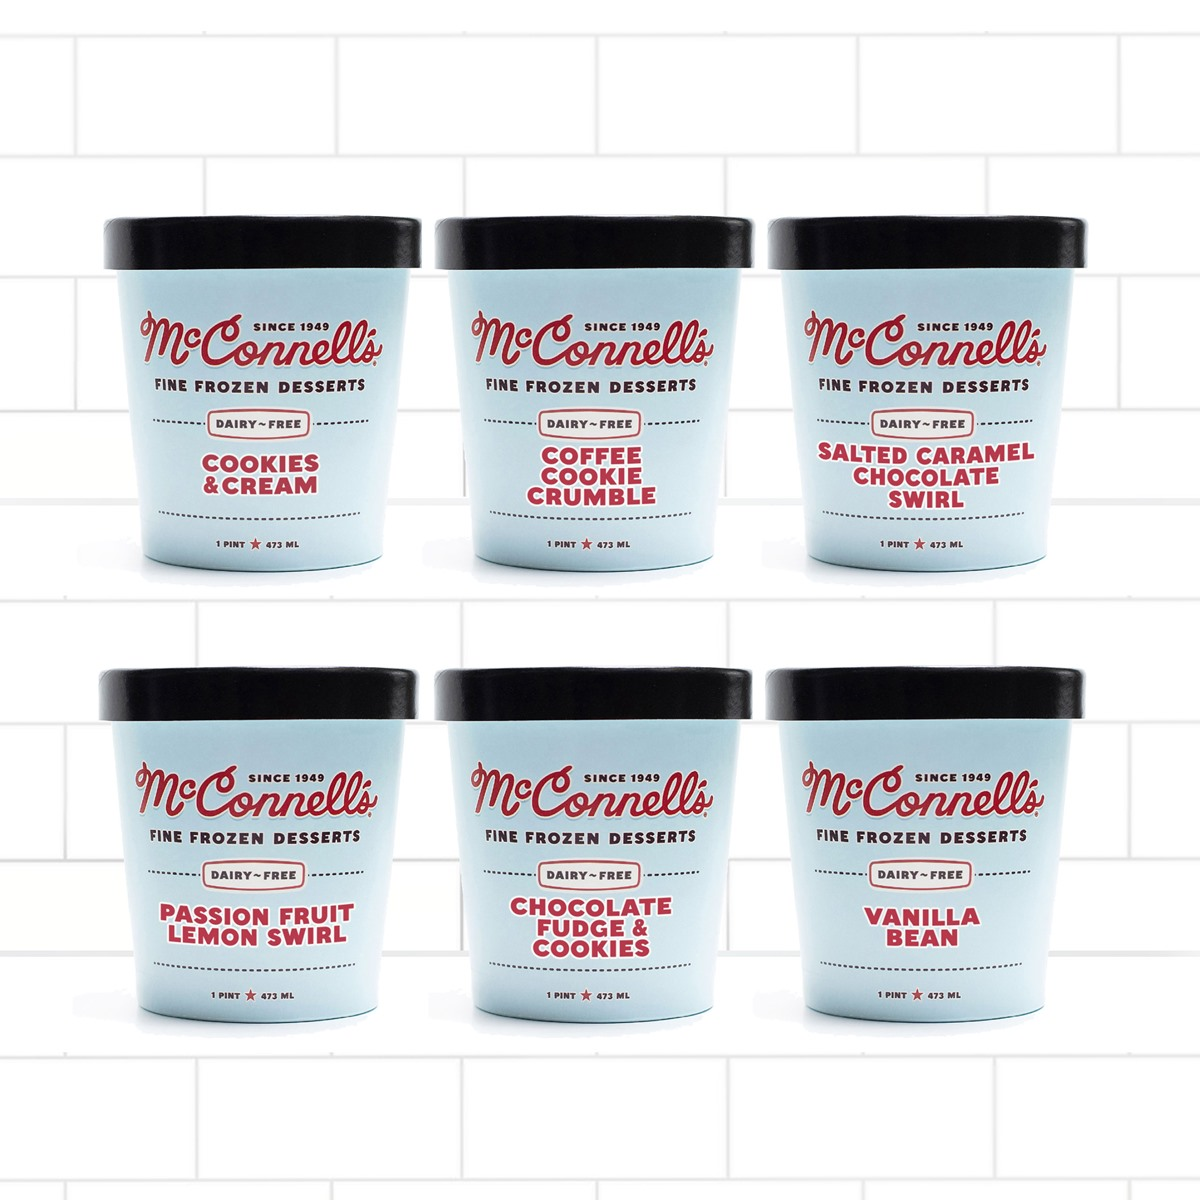 McConnell's Oat Milk Ice Cream Reviews & Info (Dairy-Free & Vegan) - 7 Flavors available by the scoop or pint, with shipping nationwide